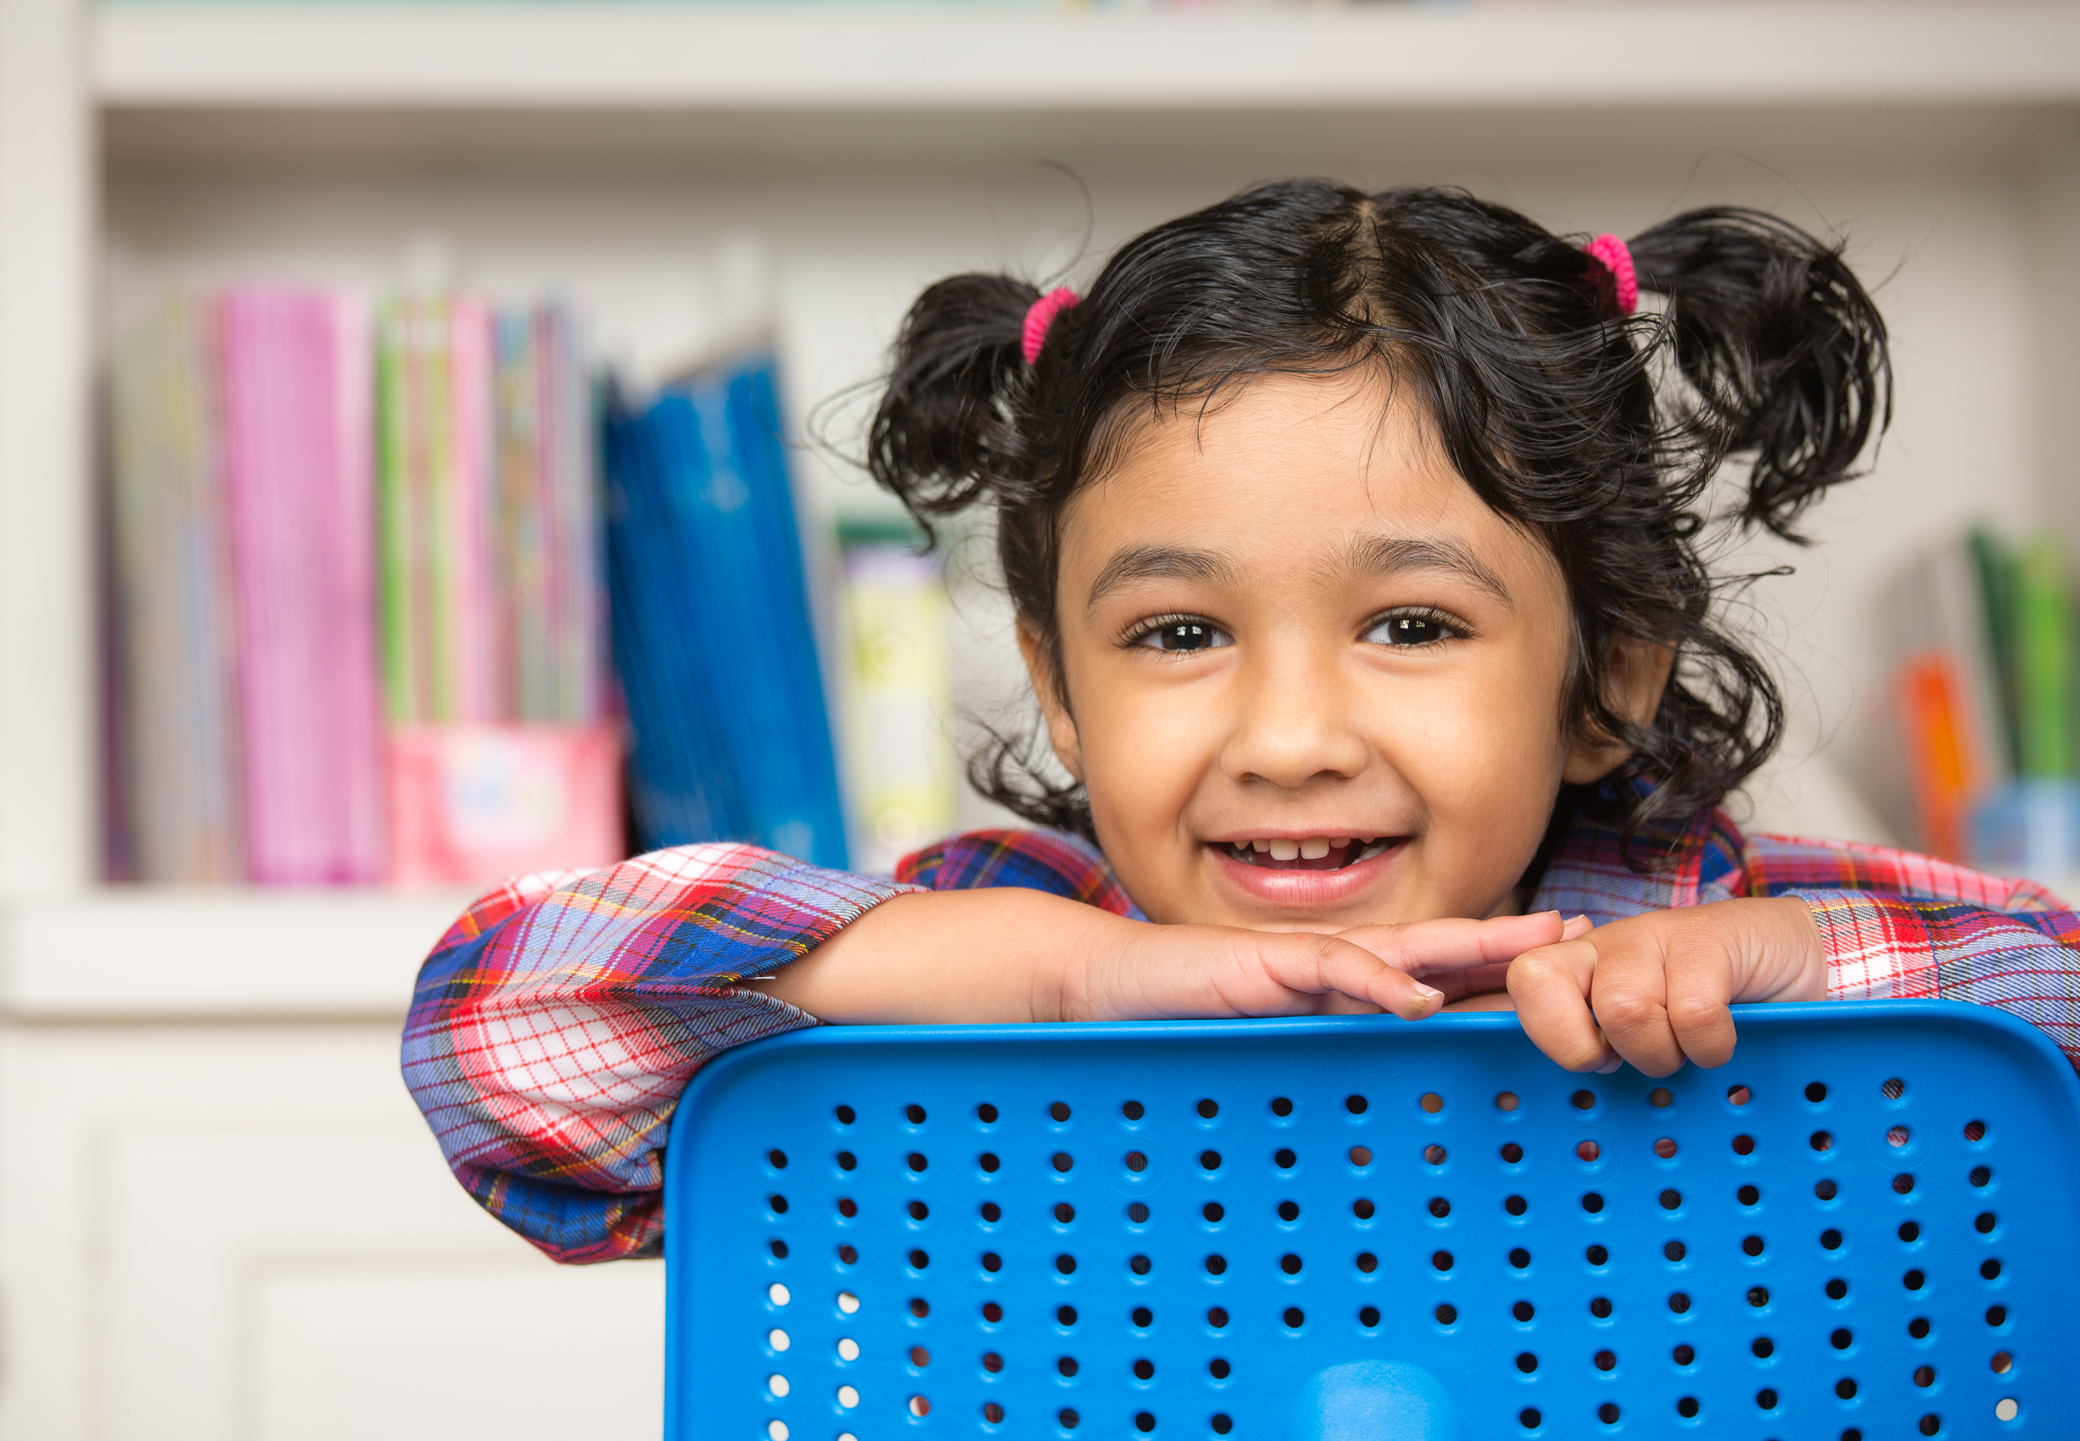 Inventory of Measures of Social and Emotional Development in Early Childhood